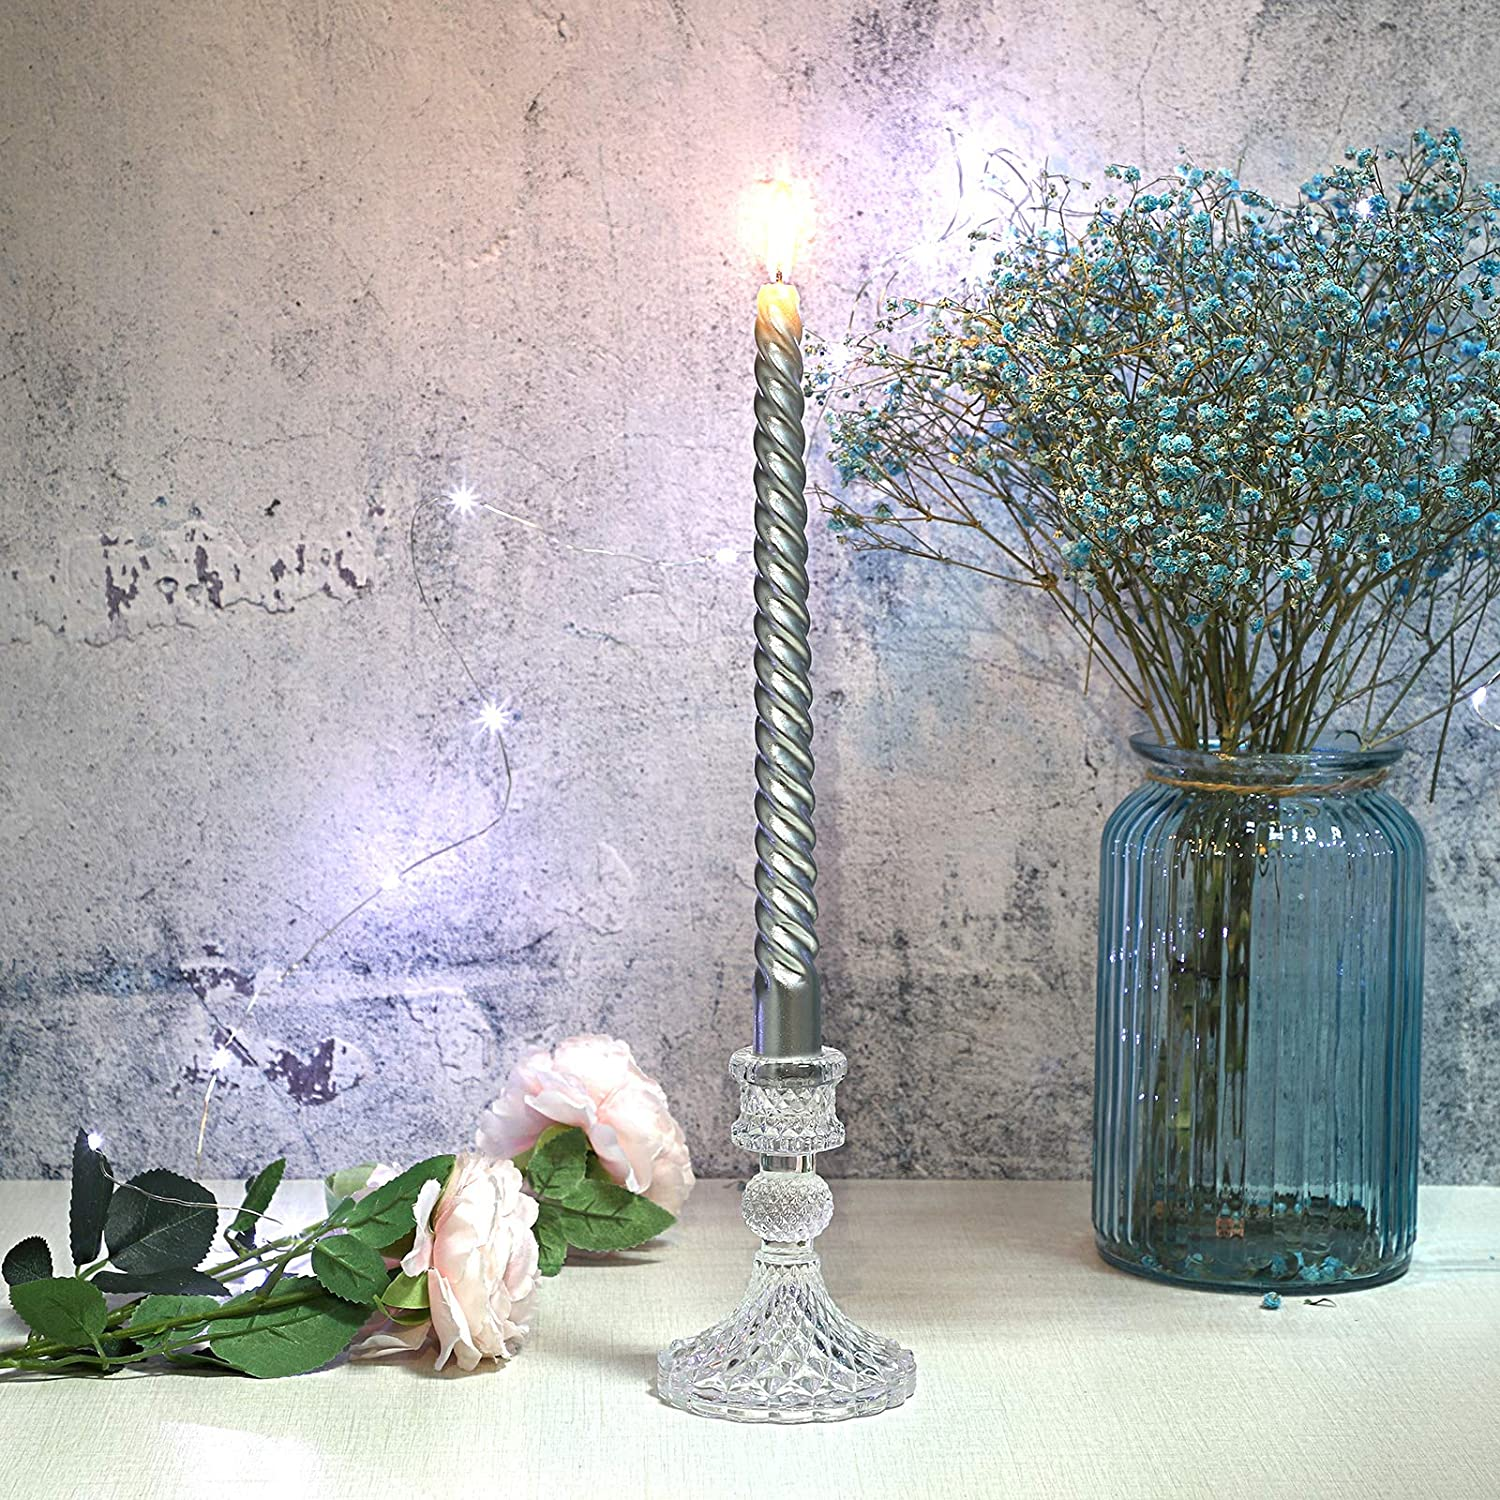 """4/""""H Modern Crystal Candelabra Pillar Glass Candle Stand Candleholder for Wedding Dinning Table Centerpieces Home Decoration OwnMy Glass Taper Candle Holder Decorative Candlestick Holder Clear"""